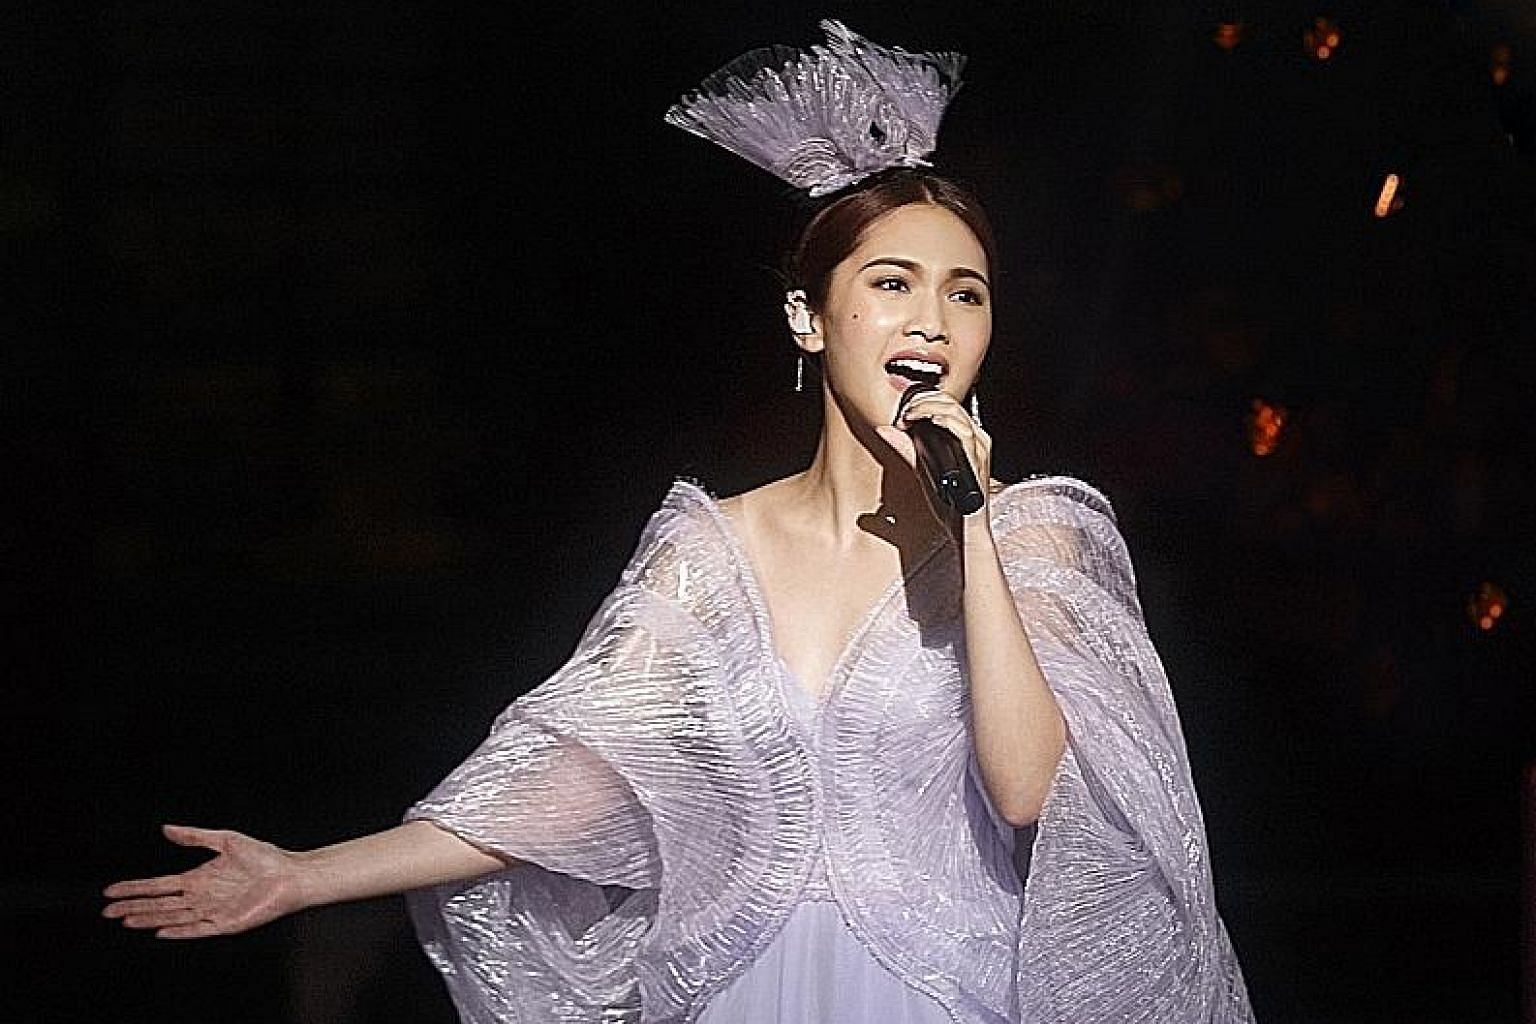 Taiwanese star Rainie Yang said she has given creative input for her show here and hopes to showcase more aspects of herself.